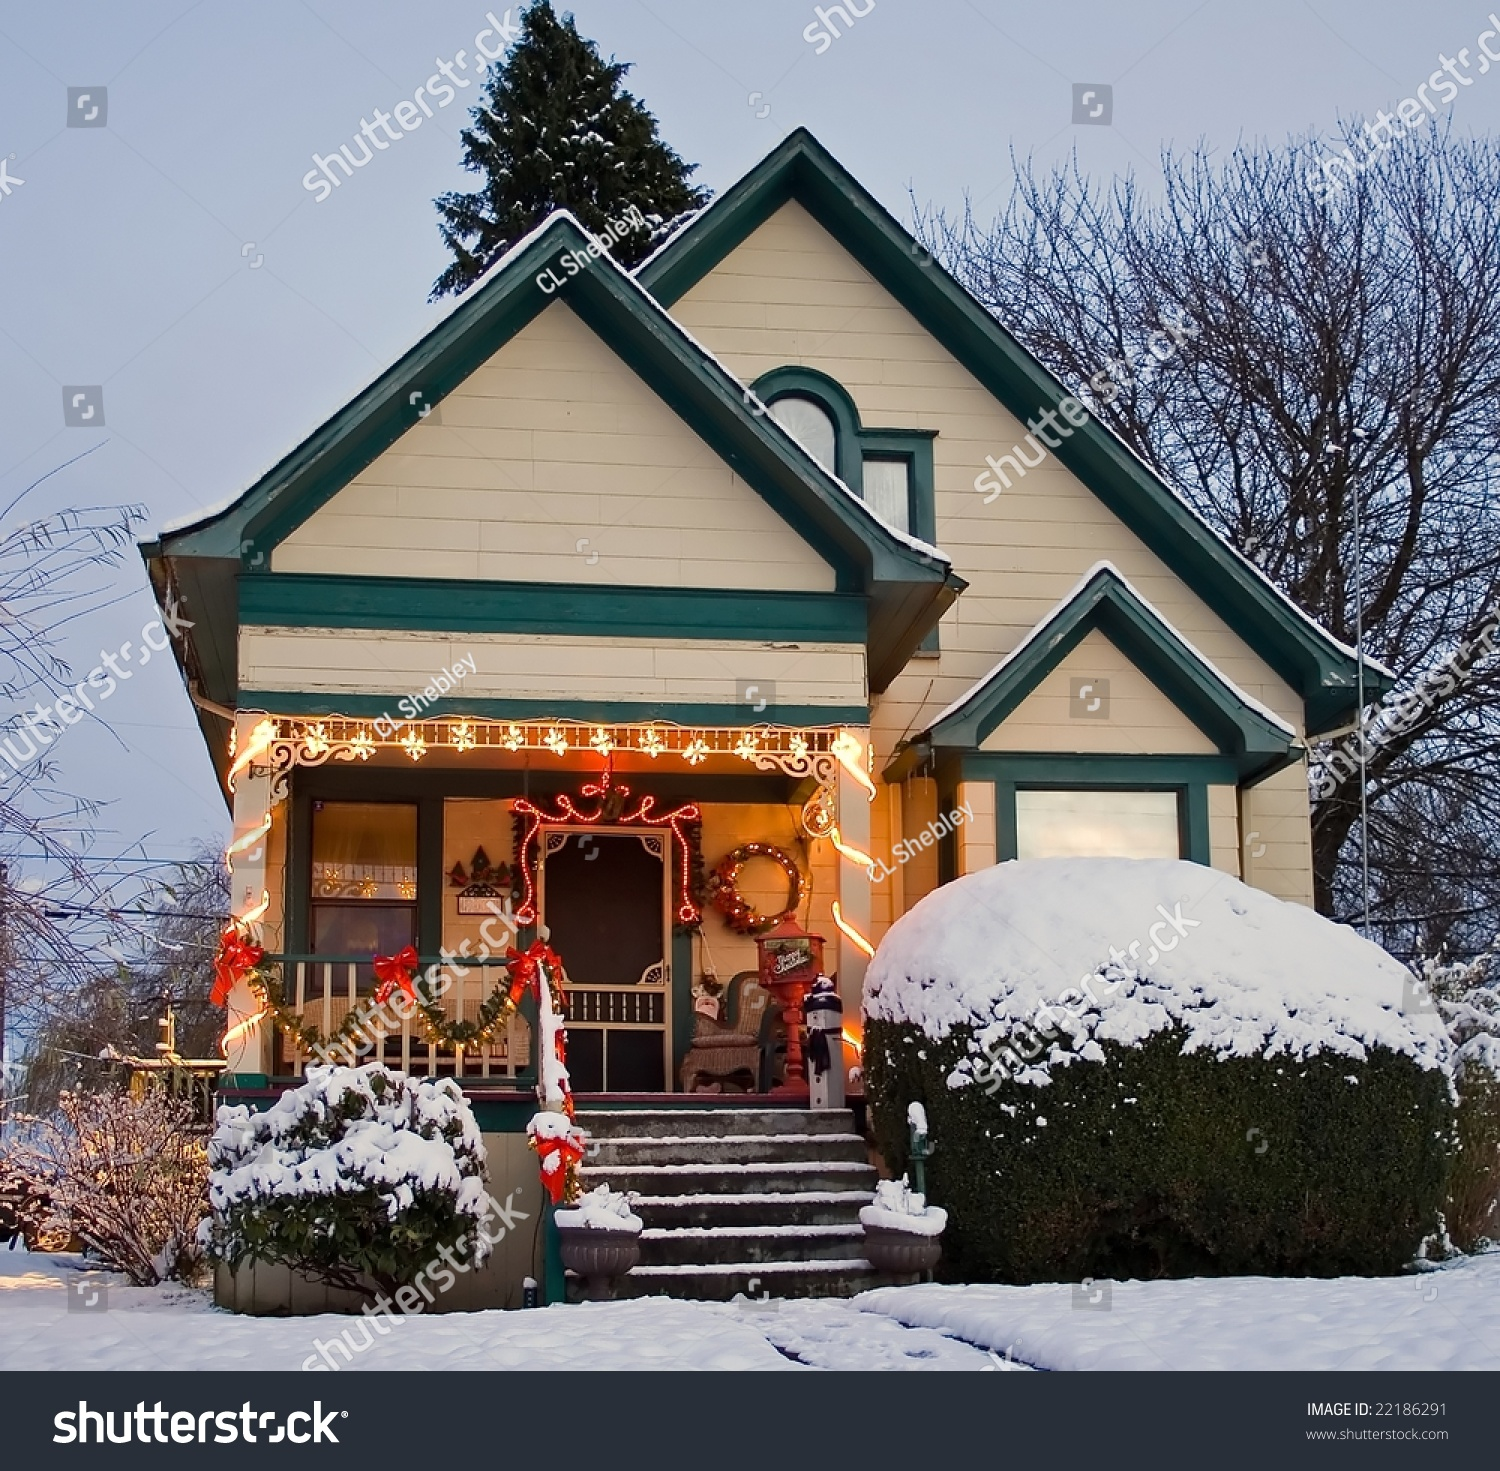 Christmas Decorations For Victorian Homes: A Yellow Victorian House With Green Trim And Christmas